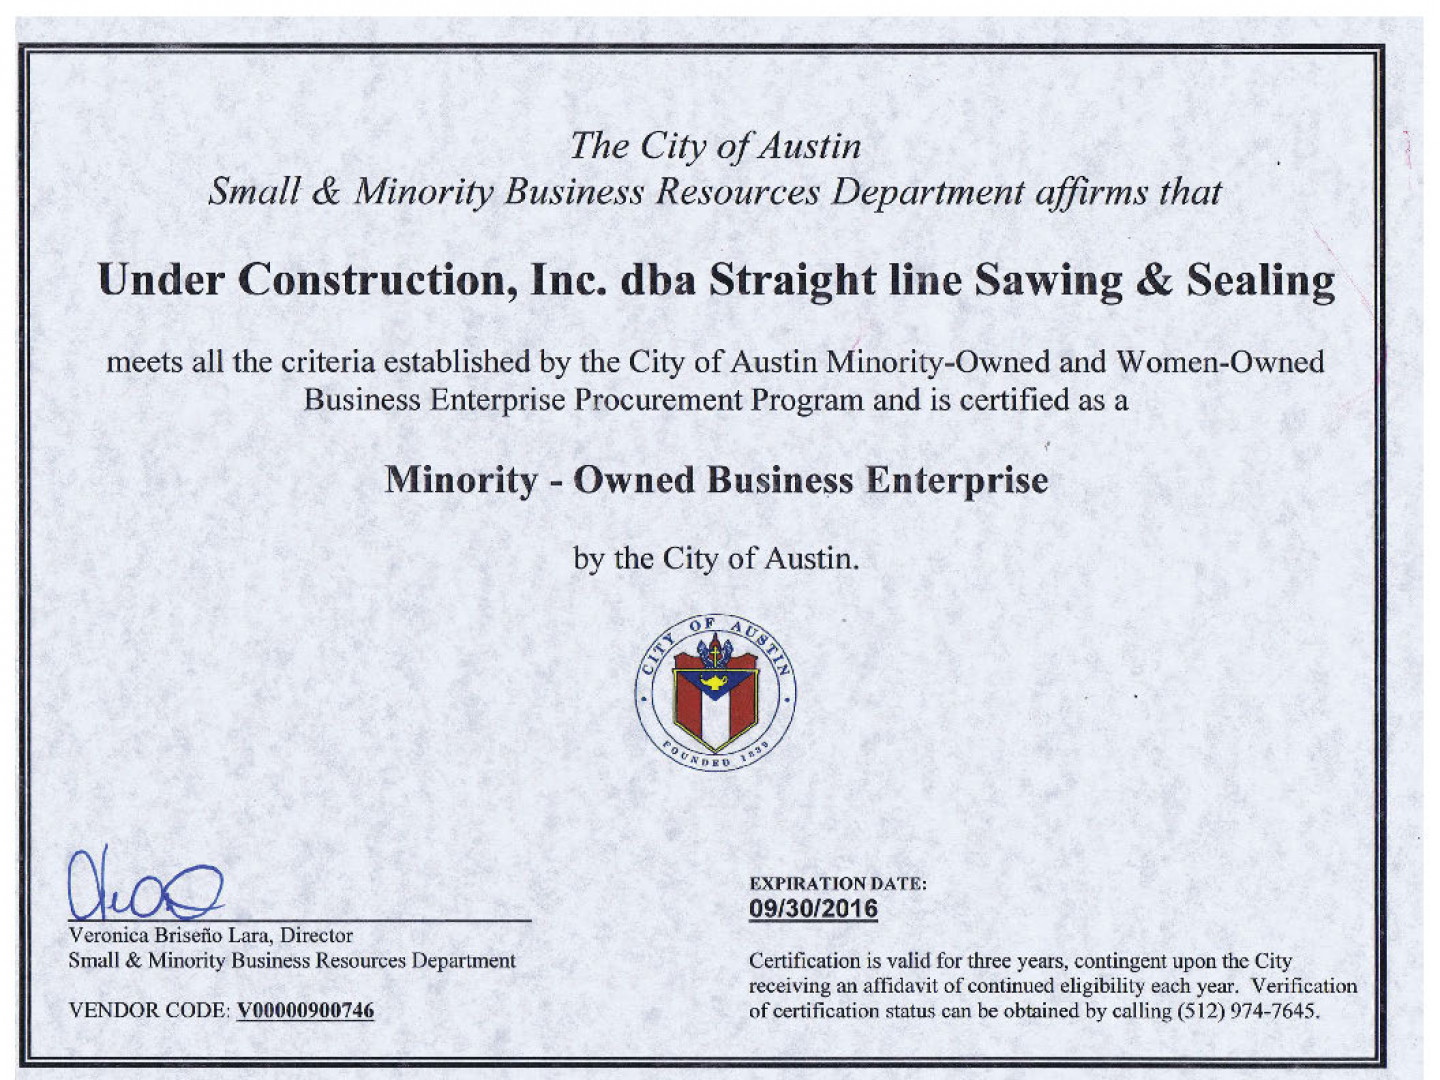 certificate mbe straight certifications sealing sawing